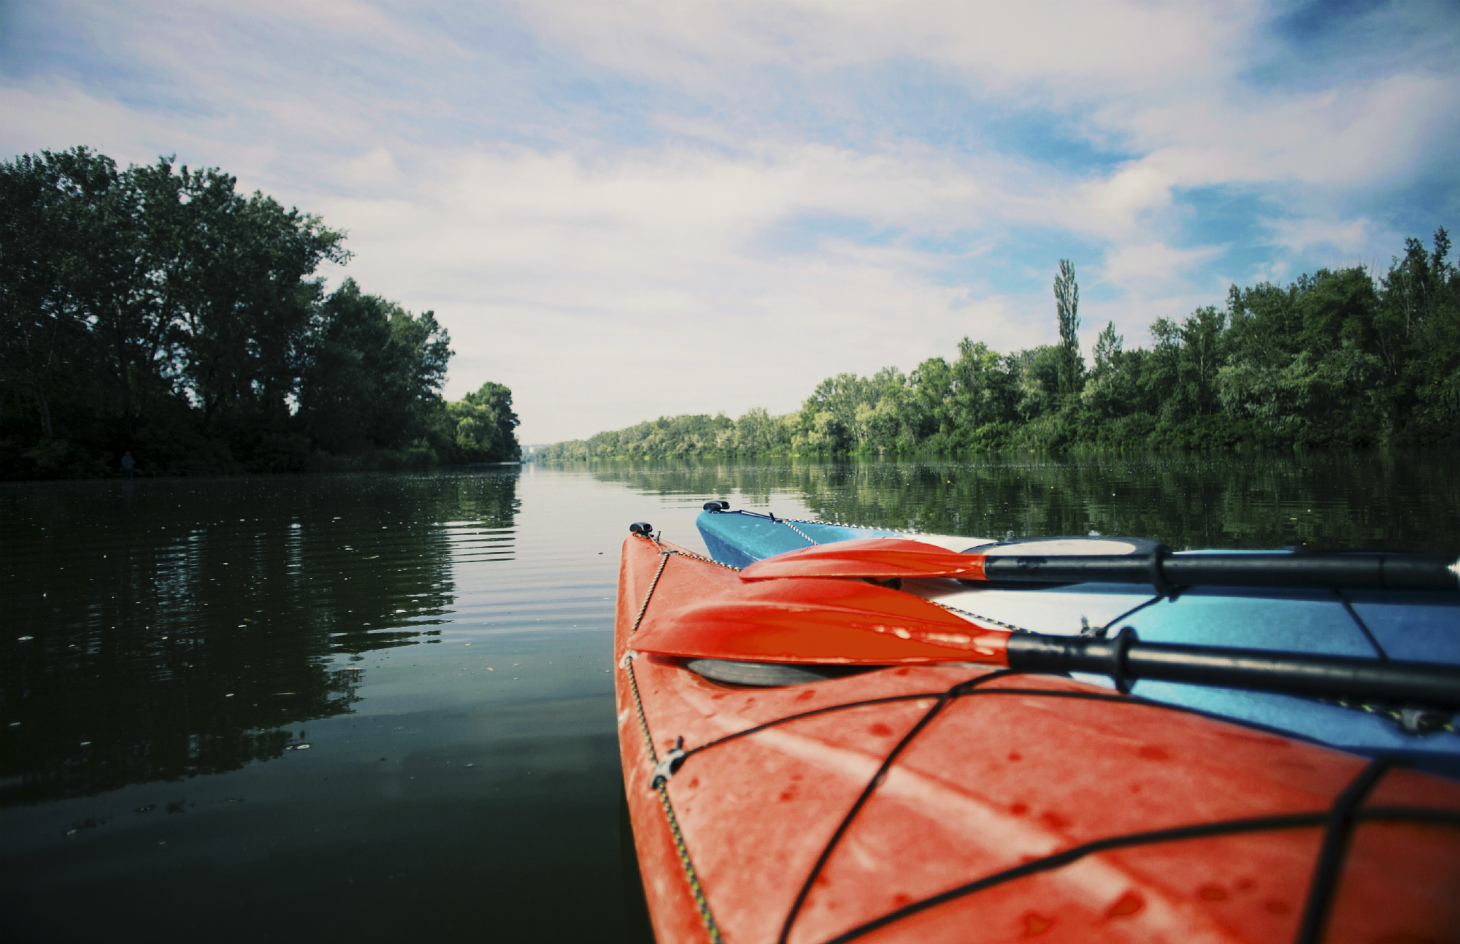 Kayaking Adventure in the Shenandoah River